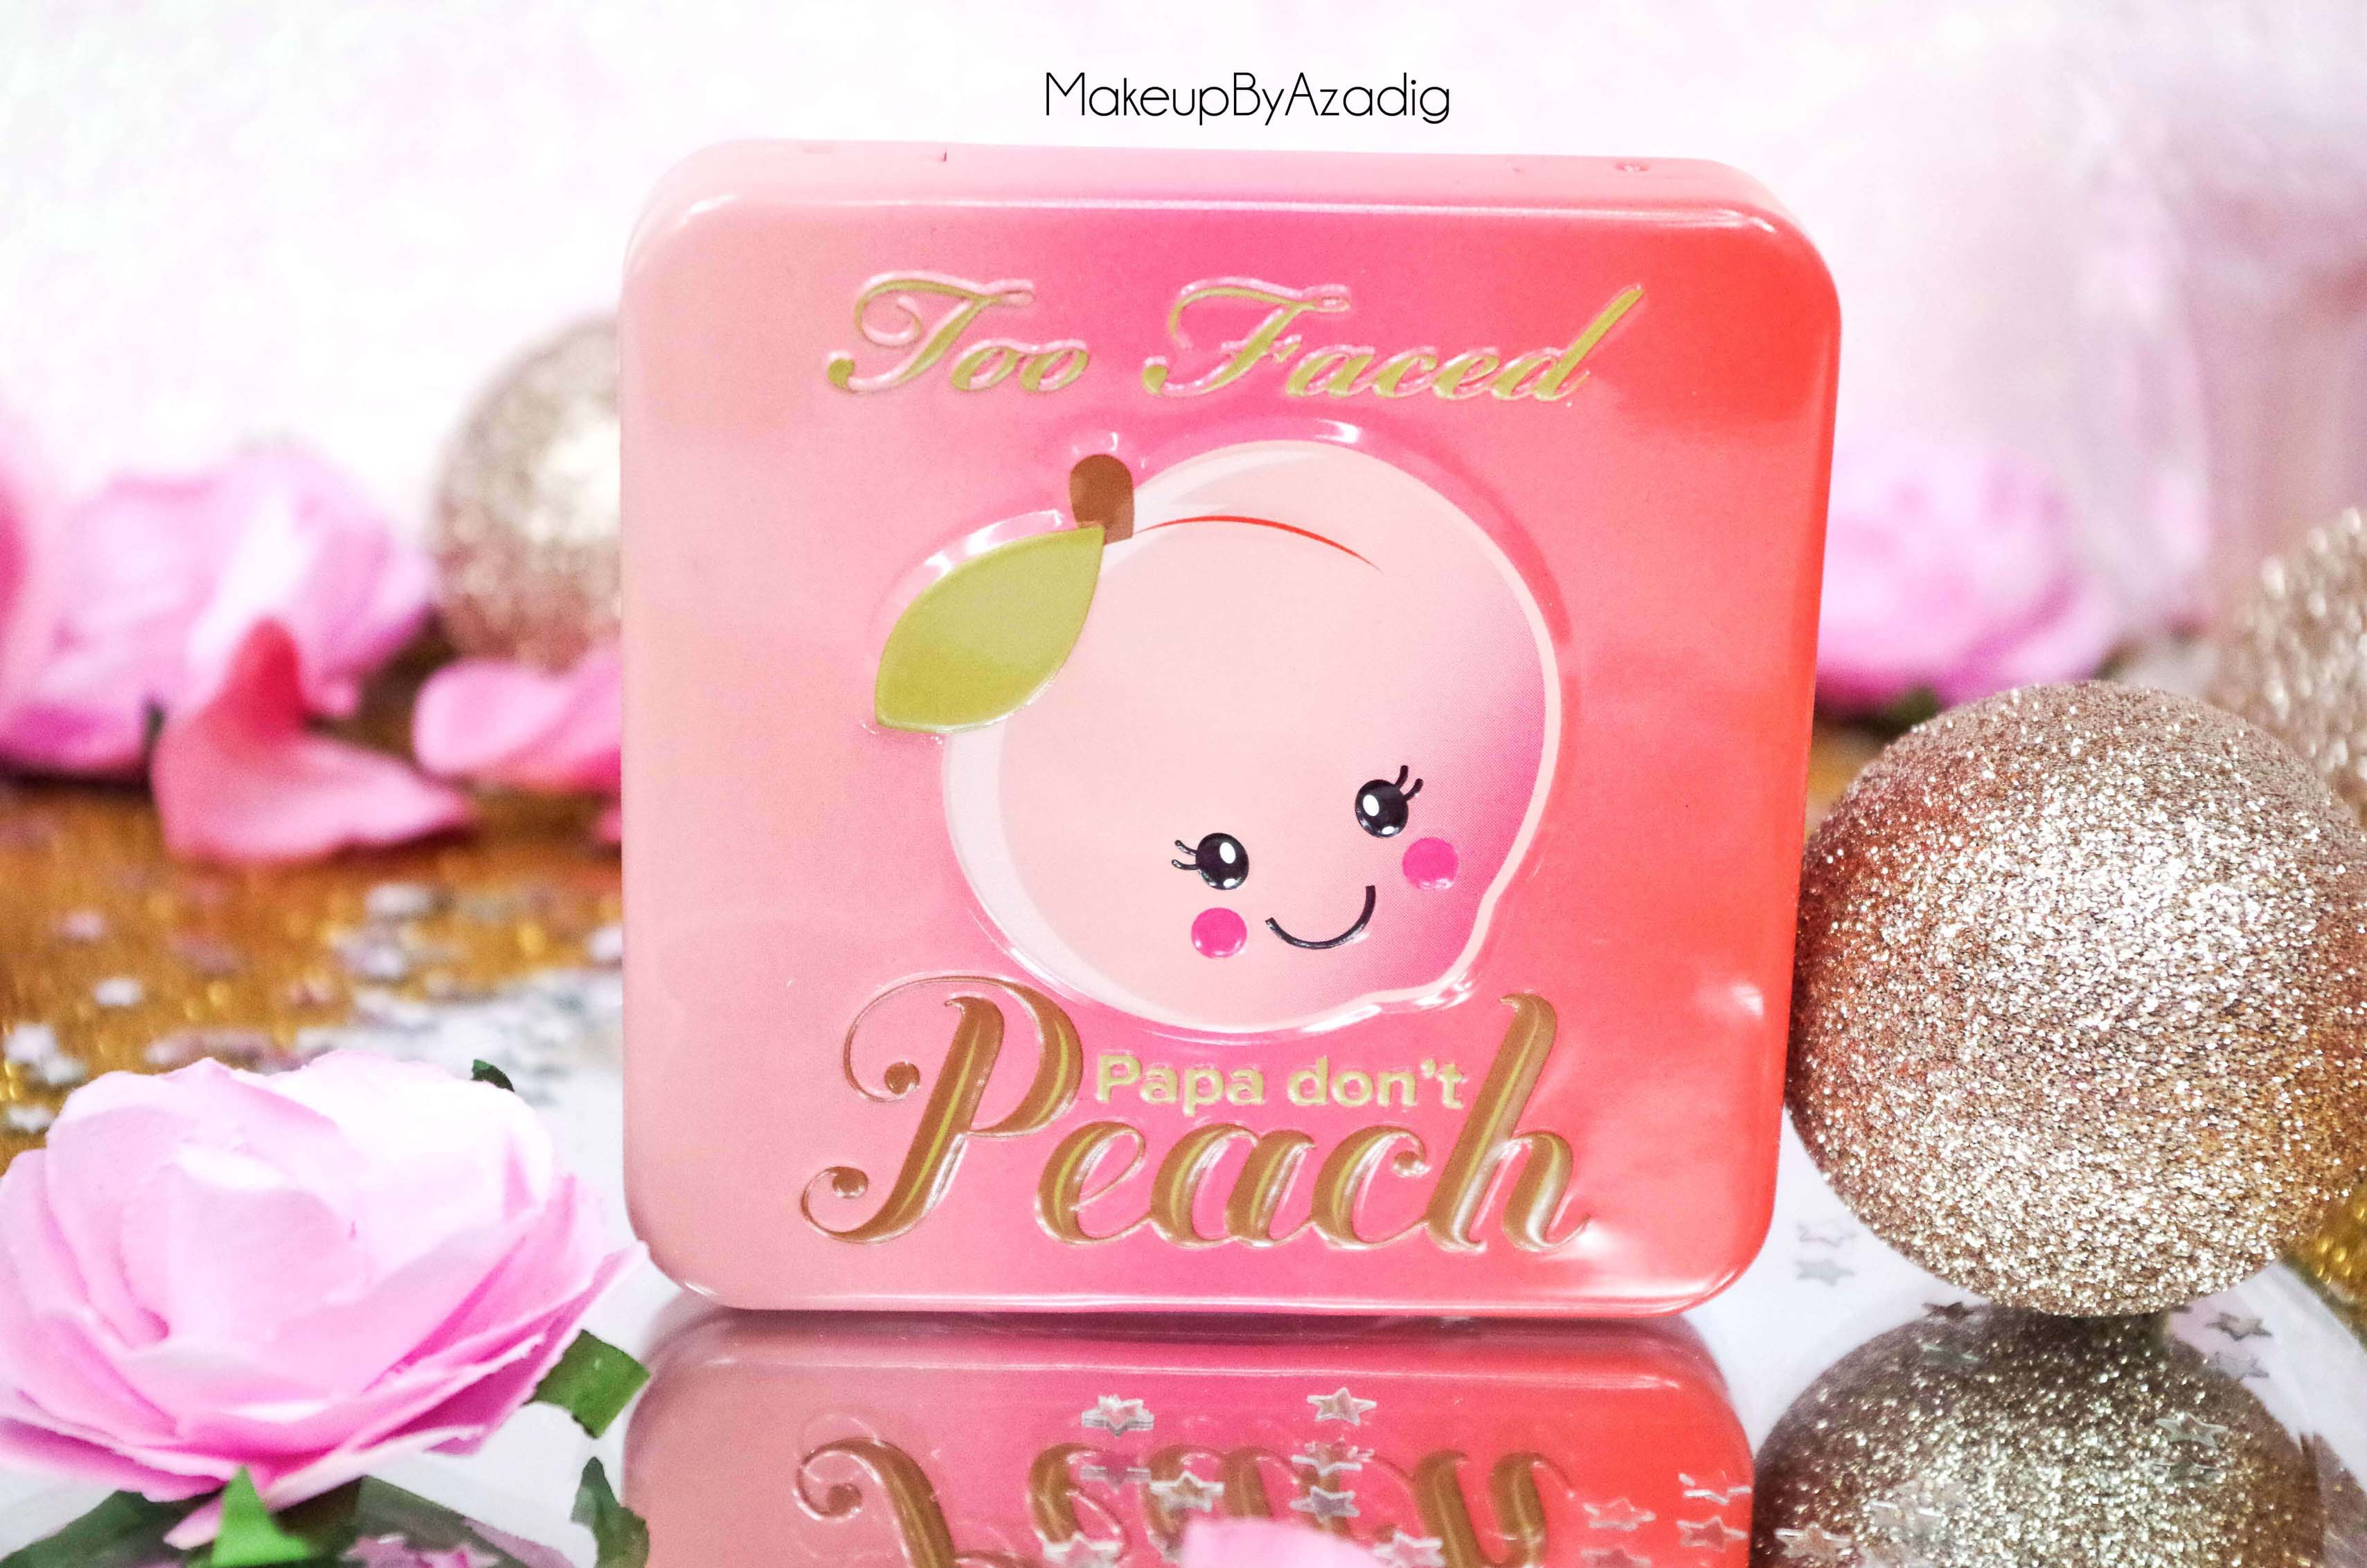 review-nouveau-blush-papa-dont-peach-too-faced-sephora-ete-printemps-paris-sweet-peach-swatch-avis-makeupbyazadig-cute-2